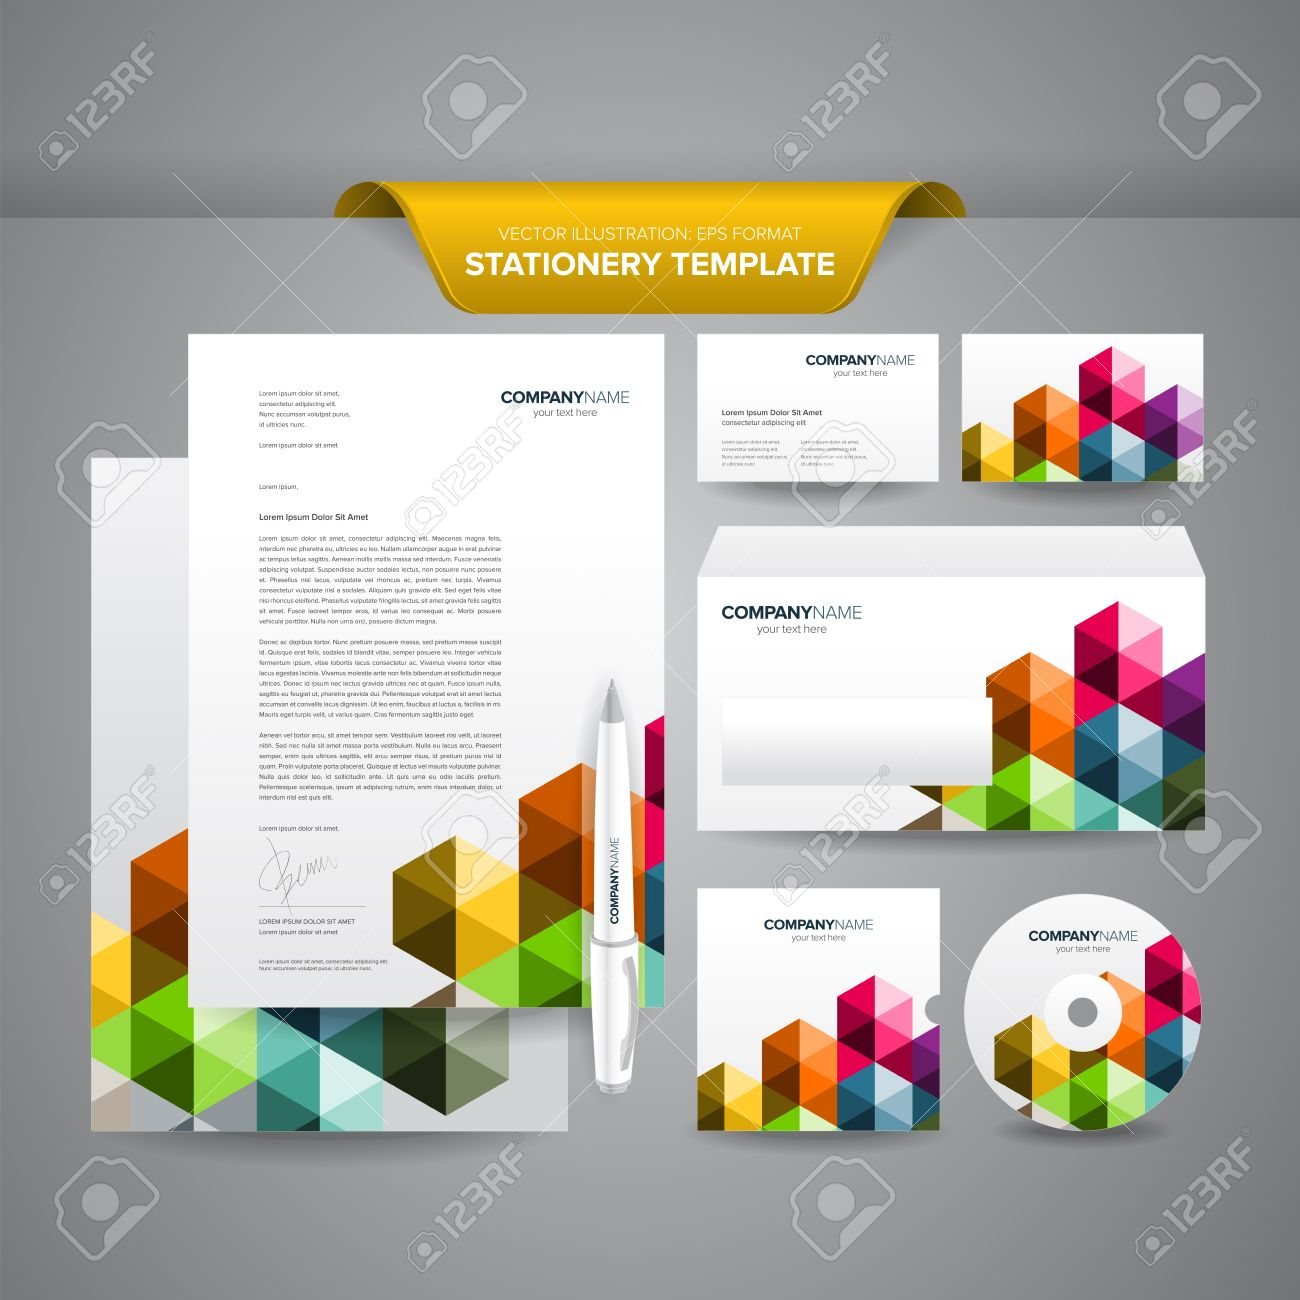 Complete set of business stationery template such as letterhead, business cards, envelope, CD cover, etc Stock Vector - 17721496